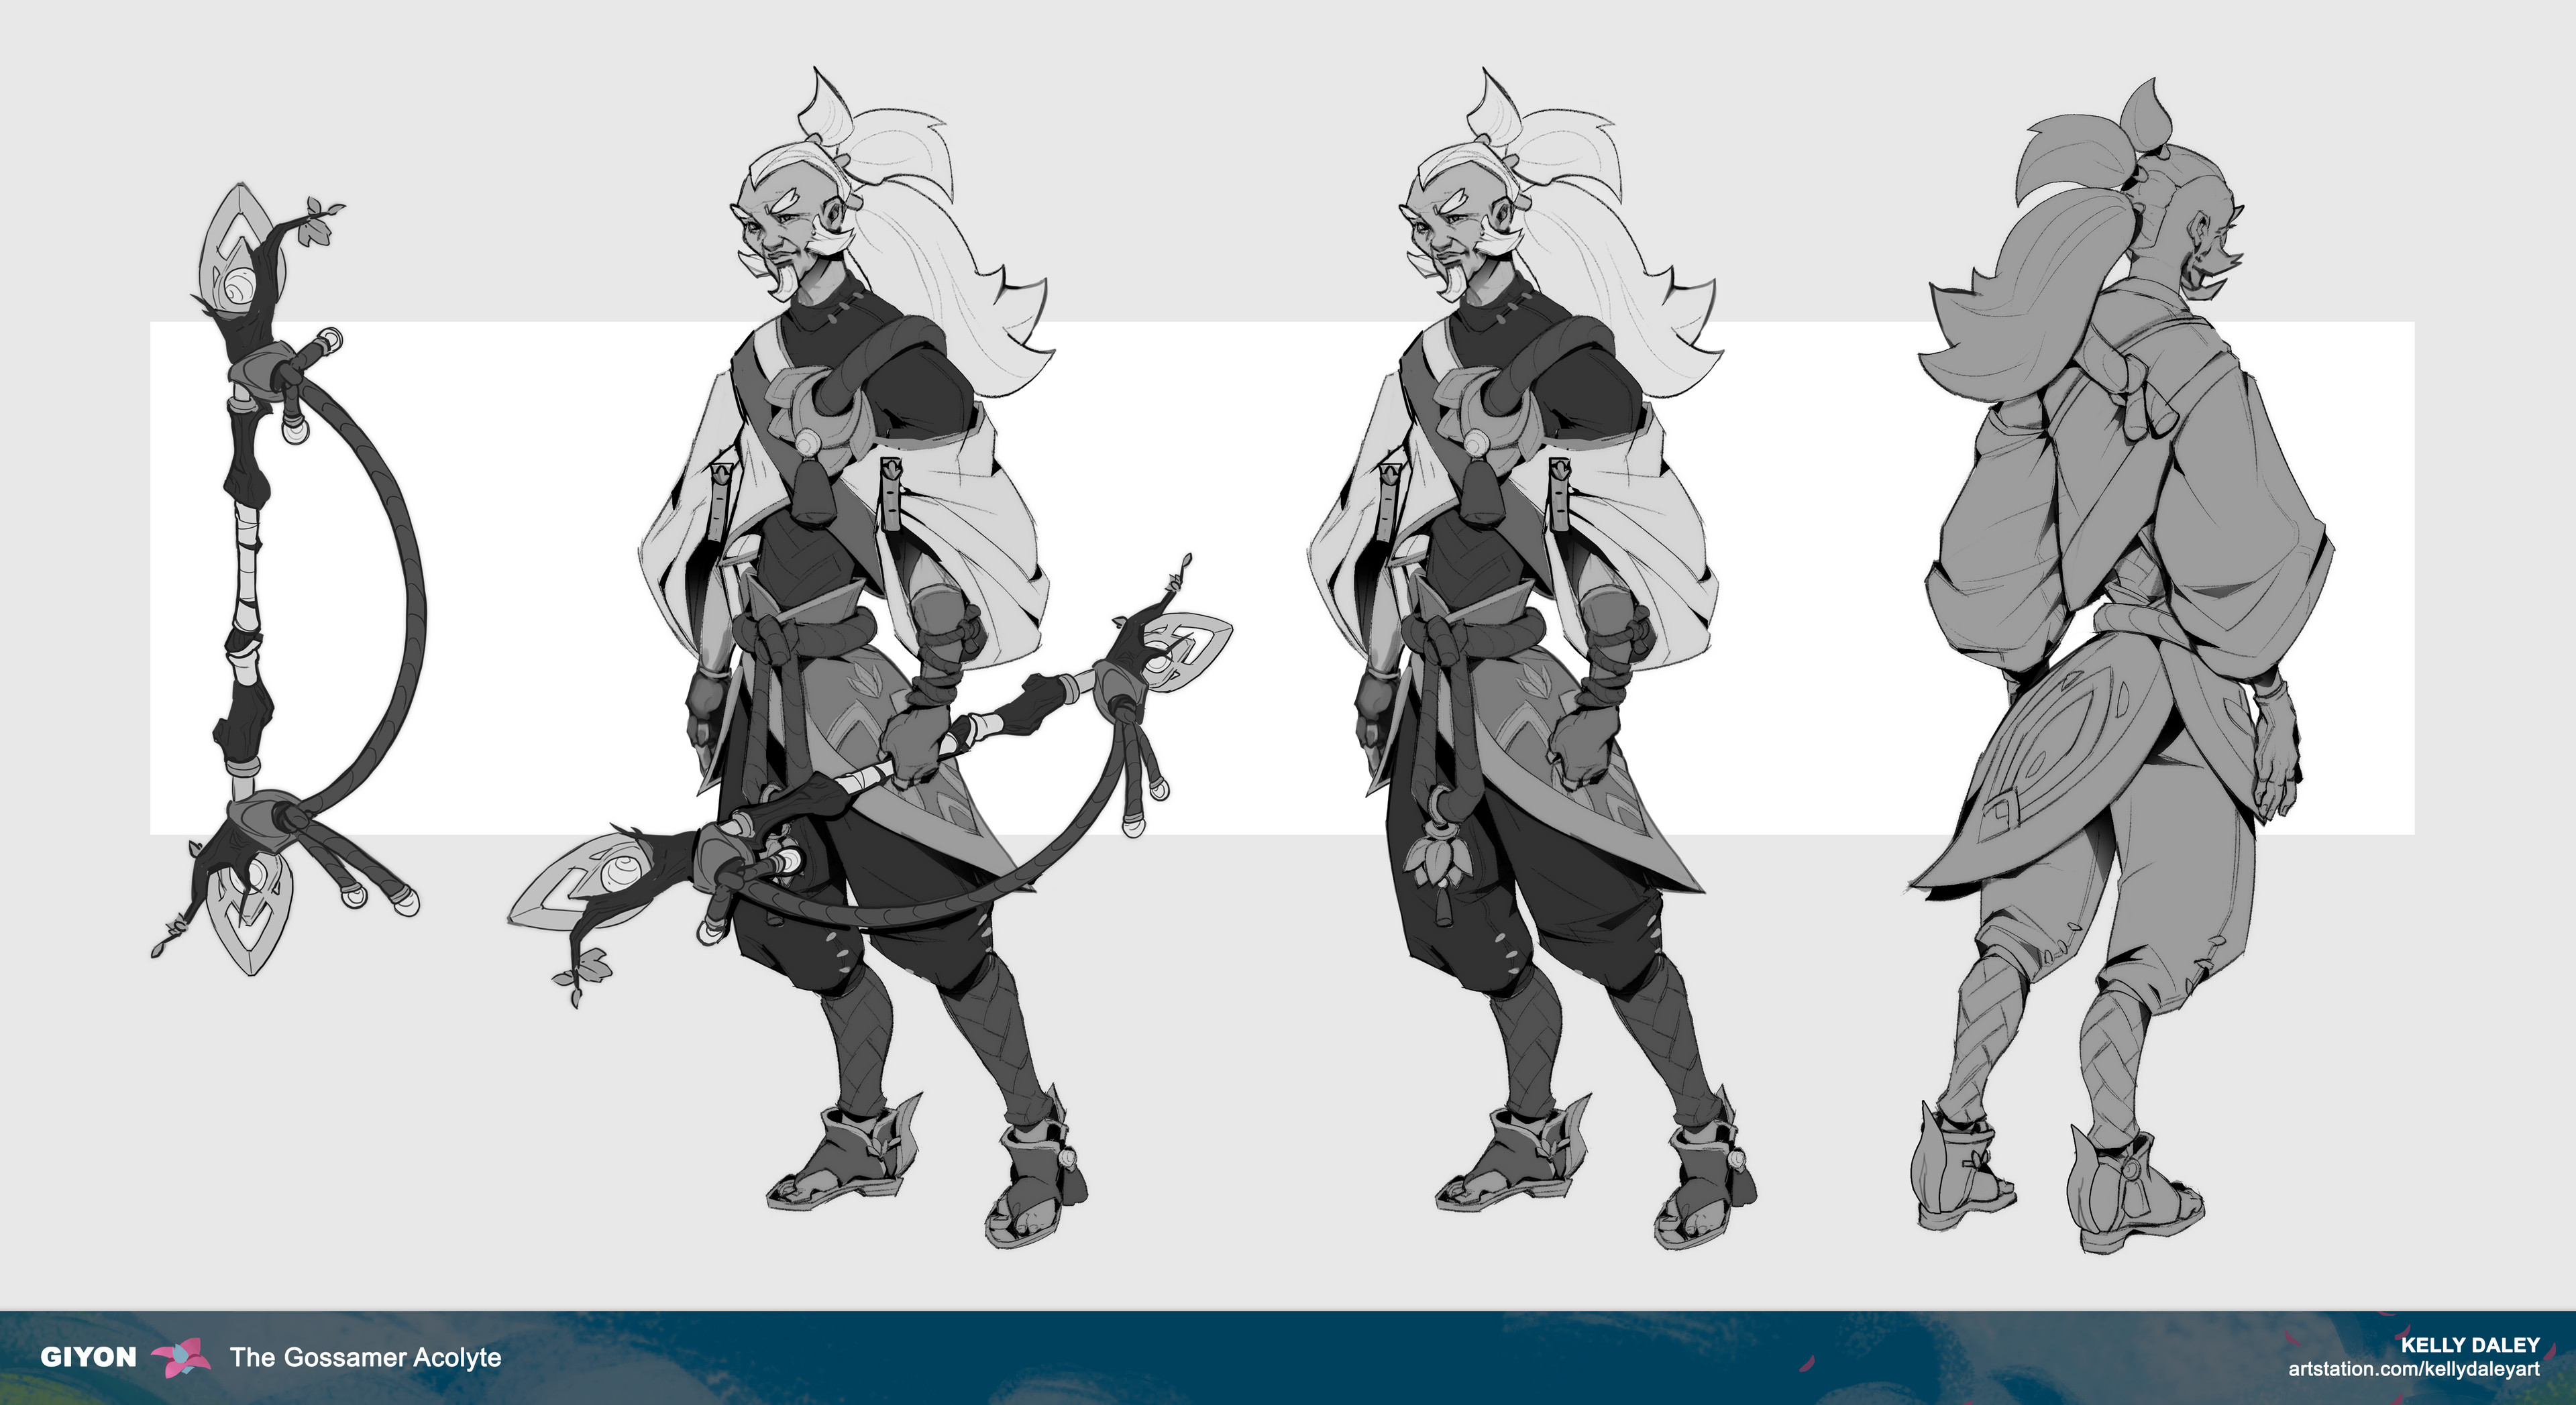 Turnaround sheet that was CLOSE to a final. There were small changes I made comparing this with the final in order to make for a clearer read for 3d character artists.